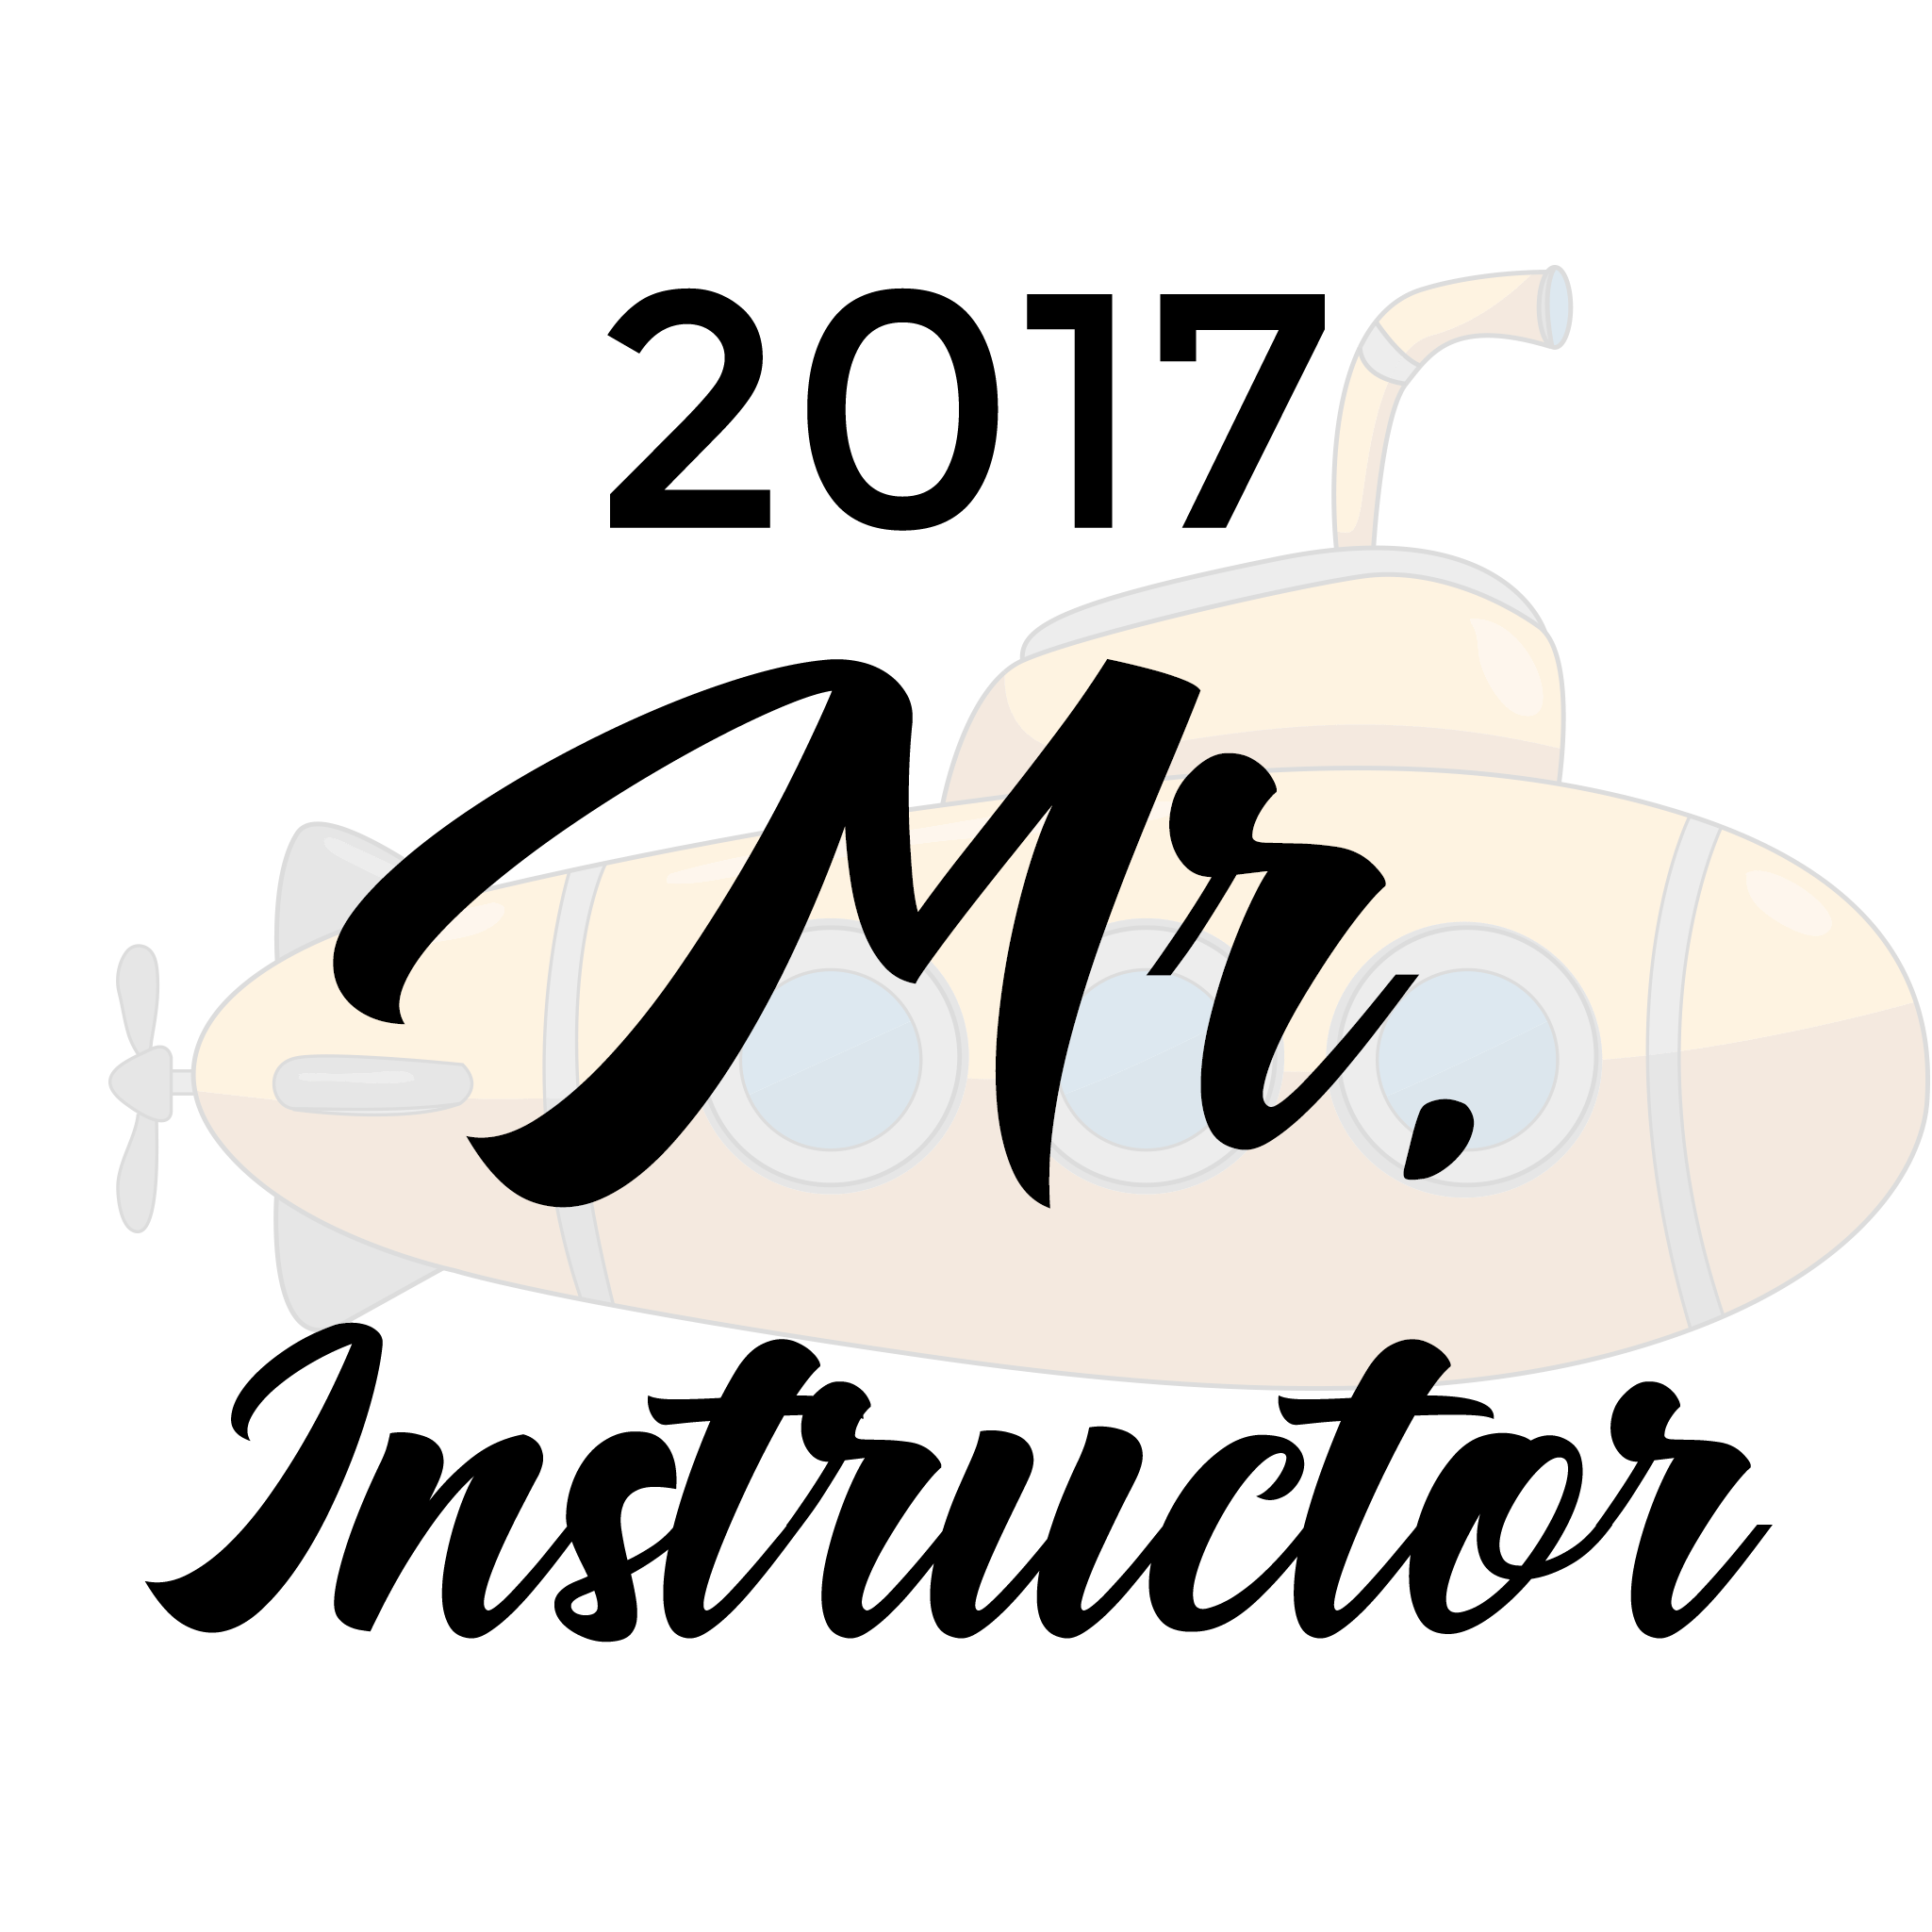 instructor asia dive. Mr clipart calligraphy mr